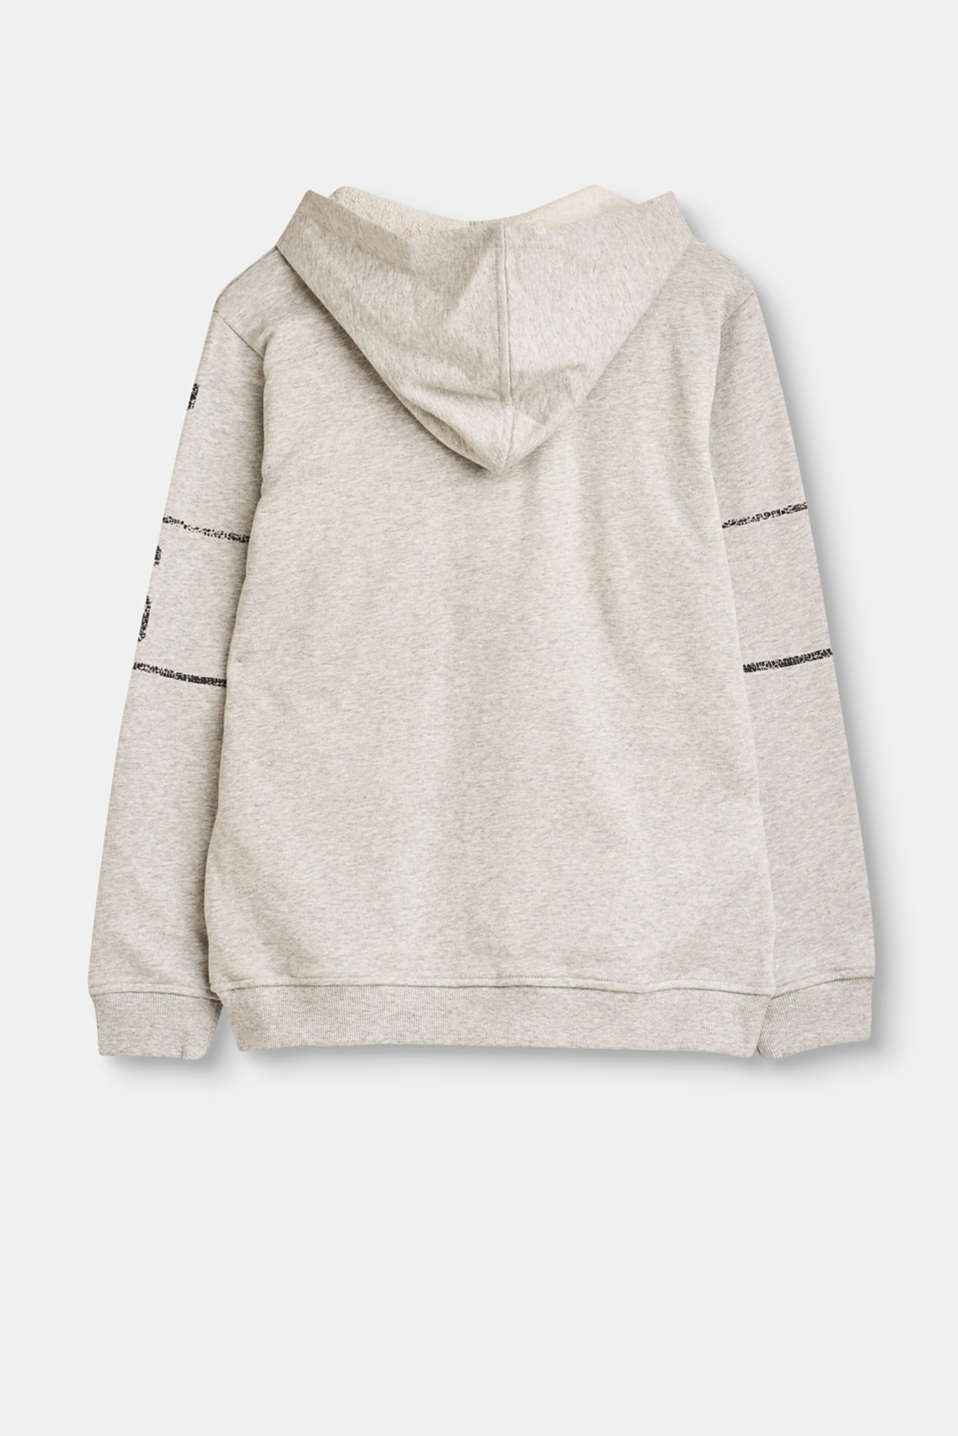 Sweatshirt cardigan in cotton